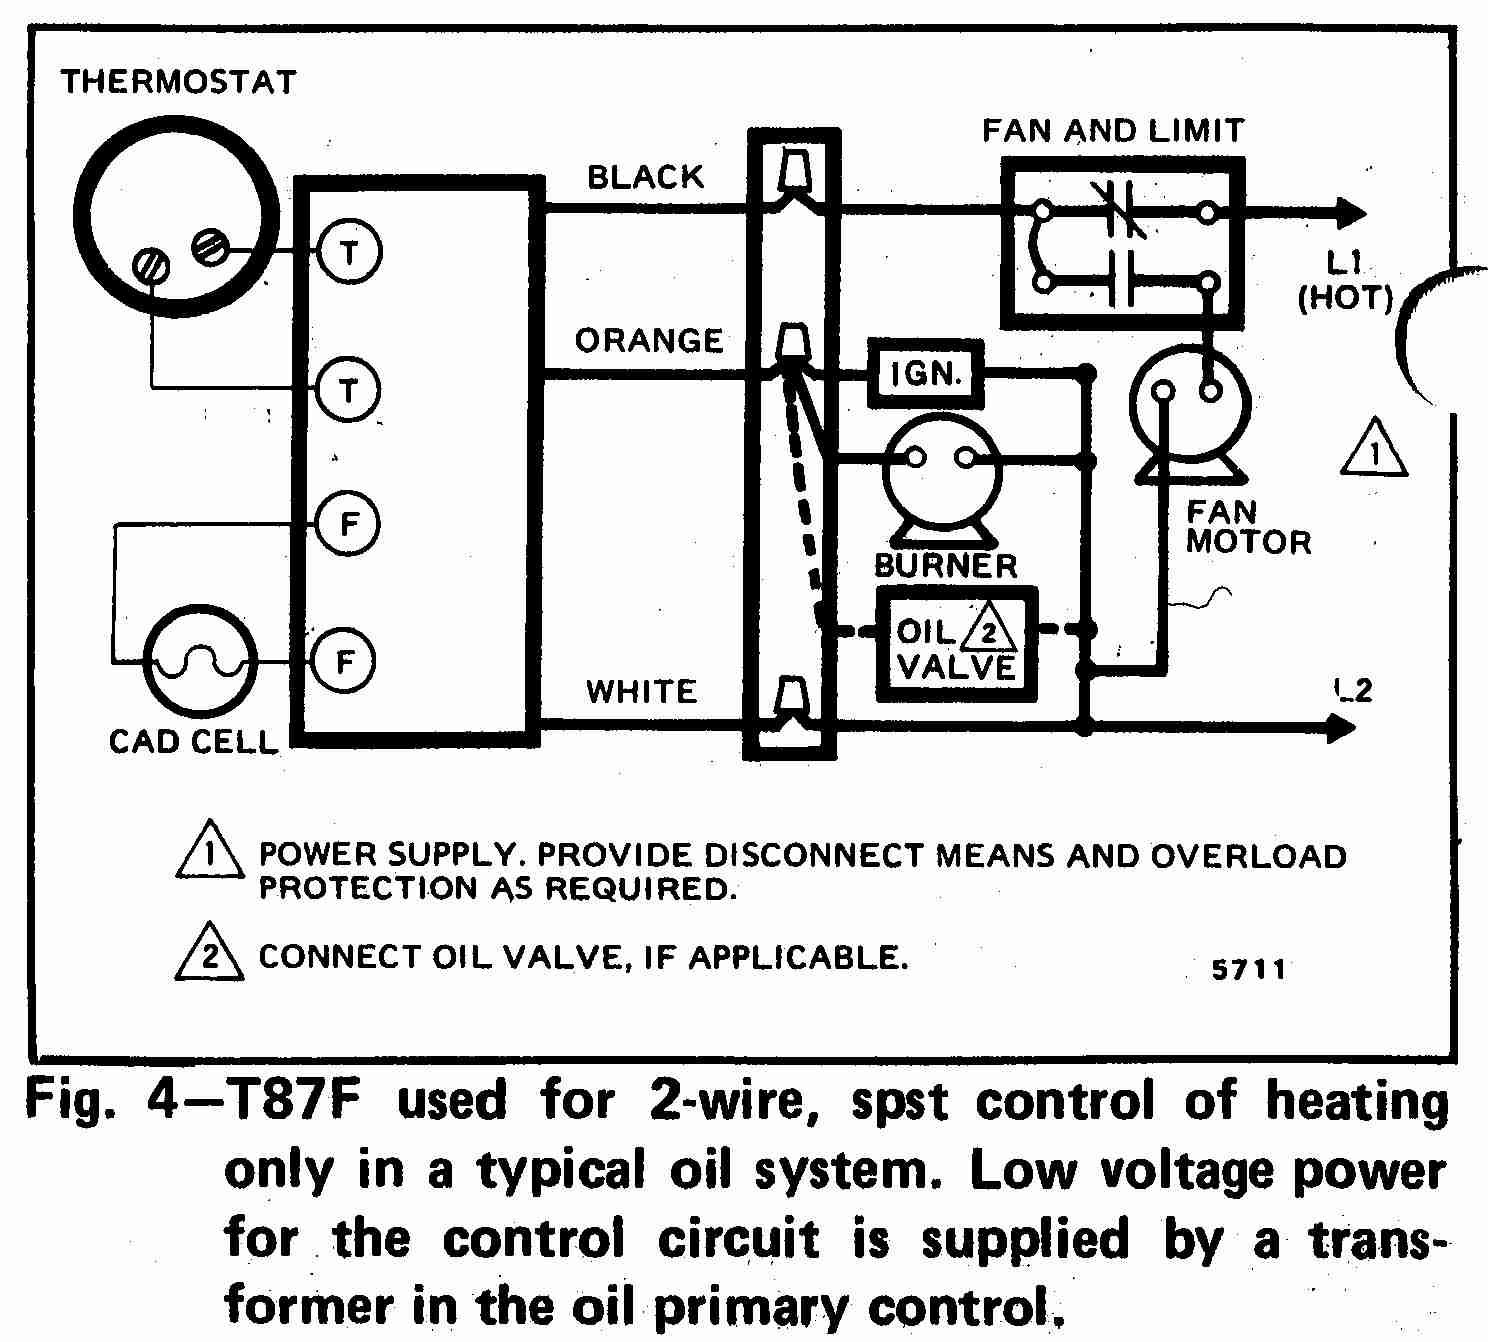 thermostat wiring diagrams for hvac systems : hvac wiring diagrams - findchart.co